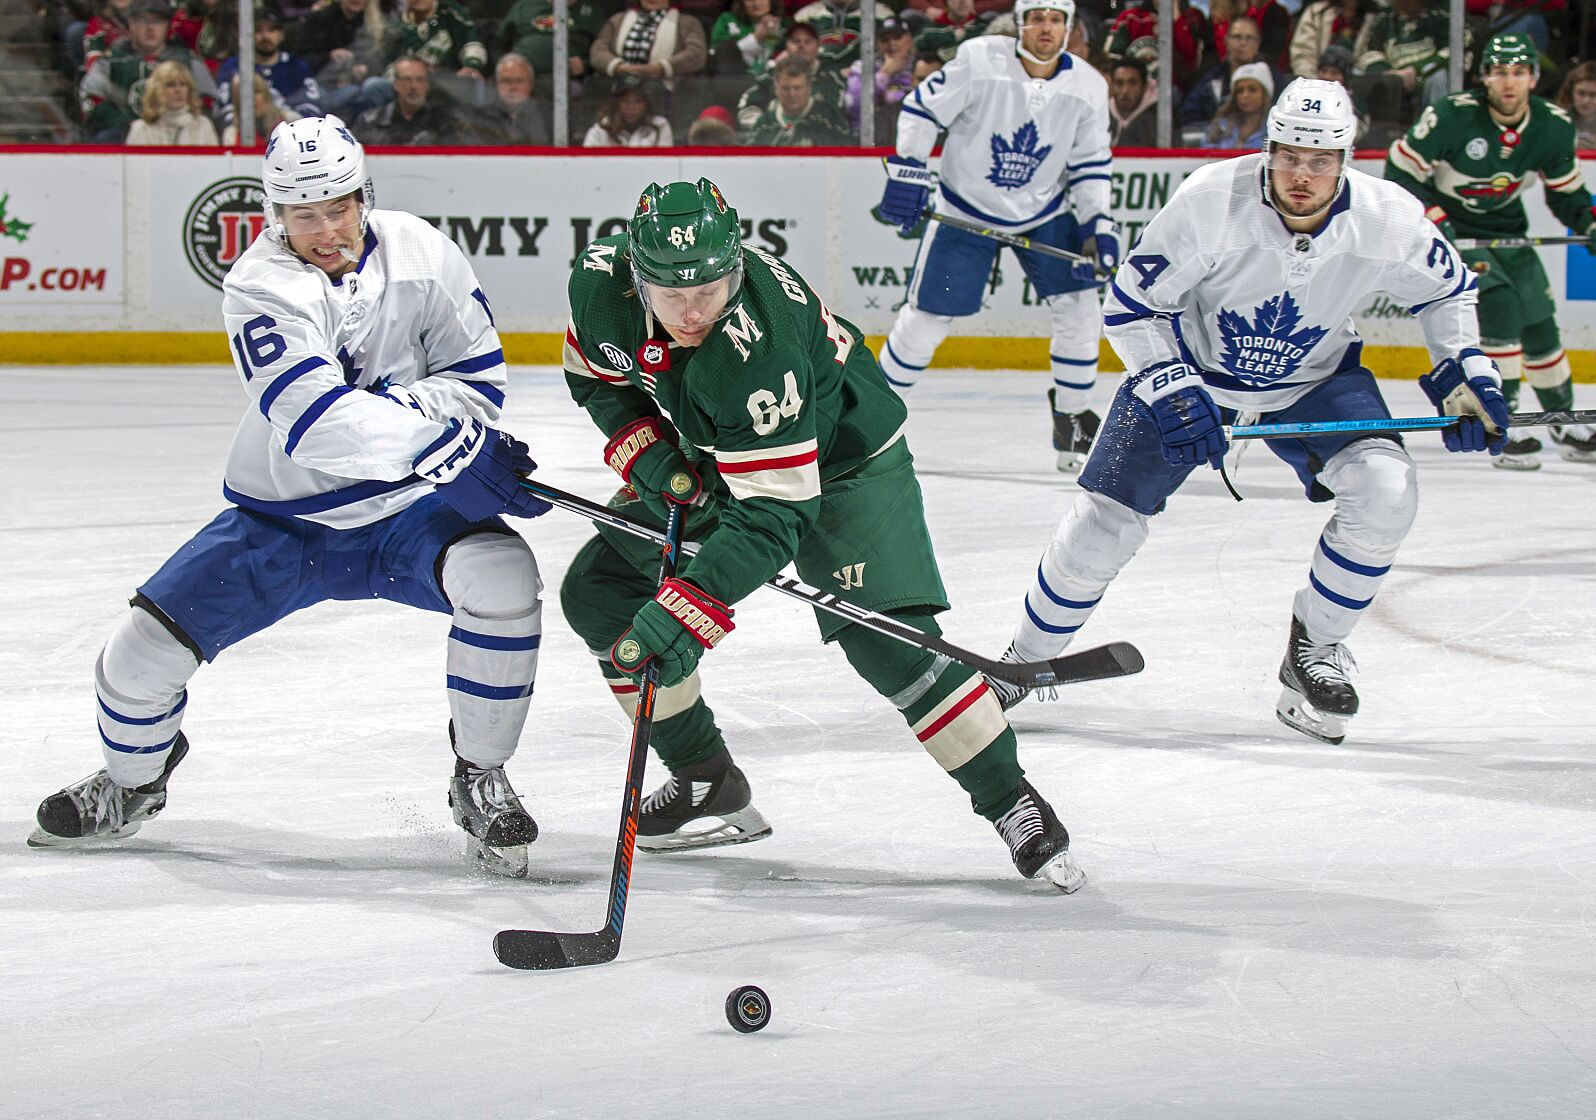 Minnesota Wild: How the Toronto Maple Leafs' blueprint could